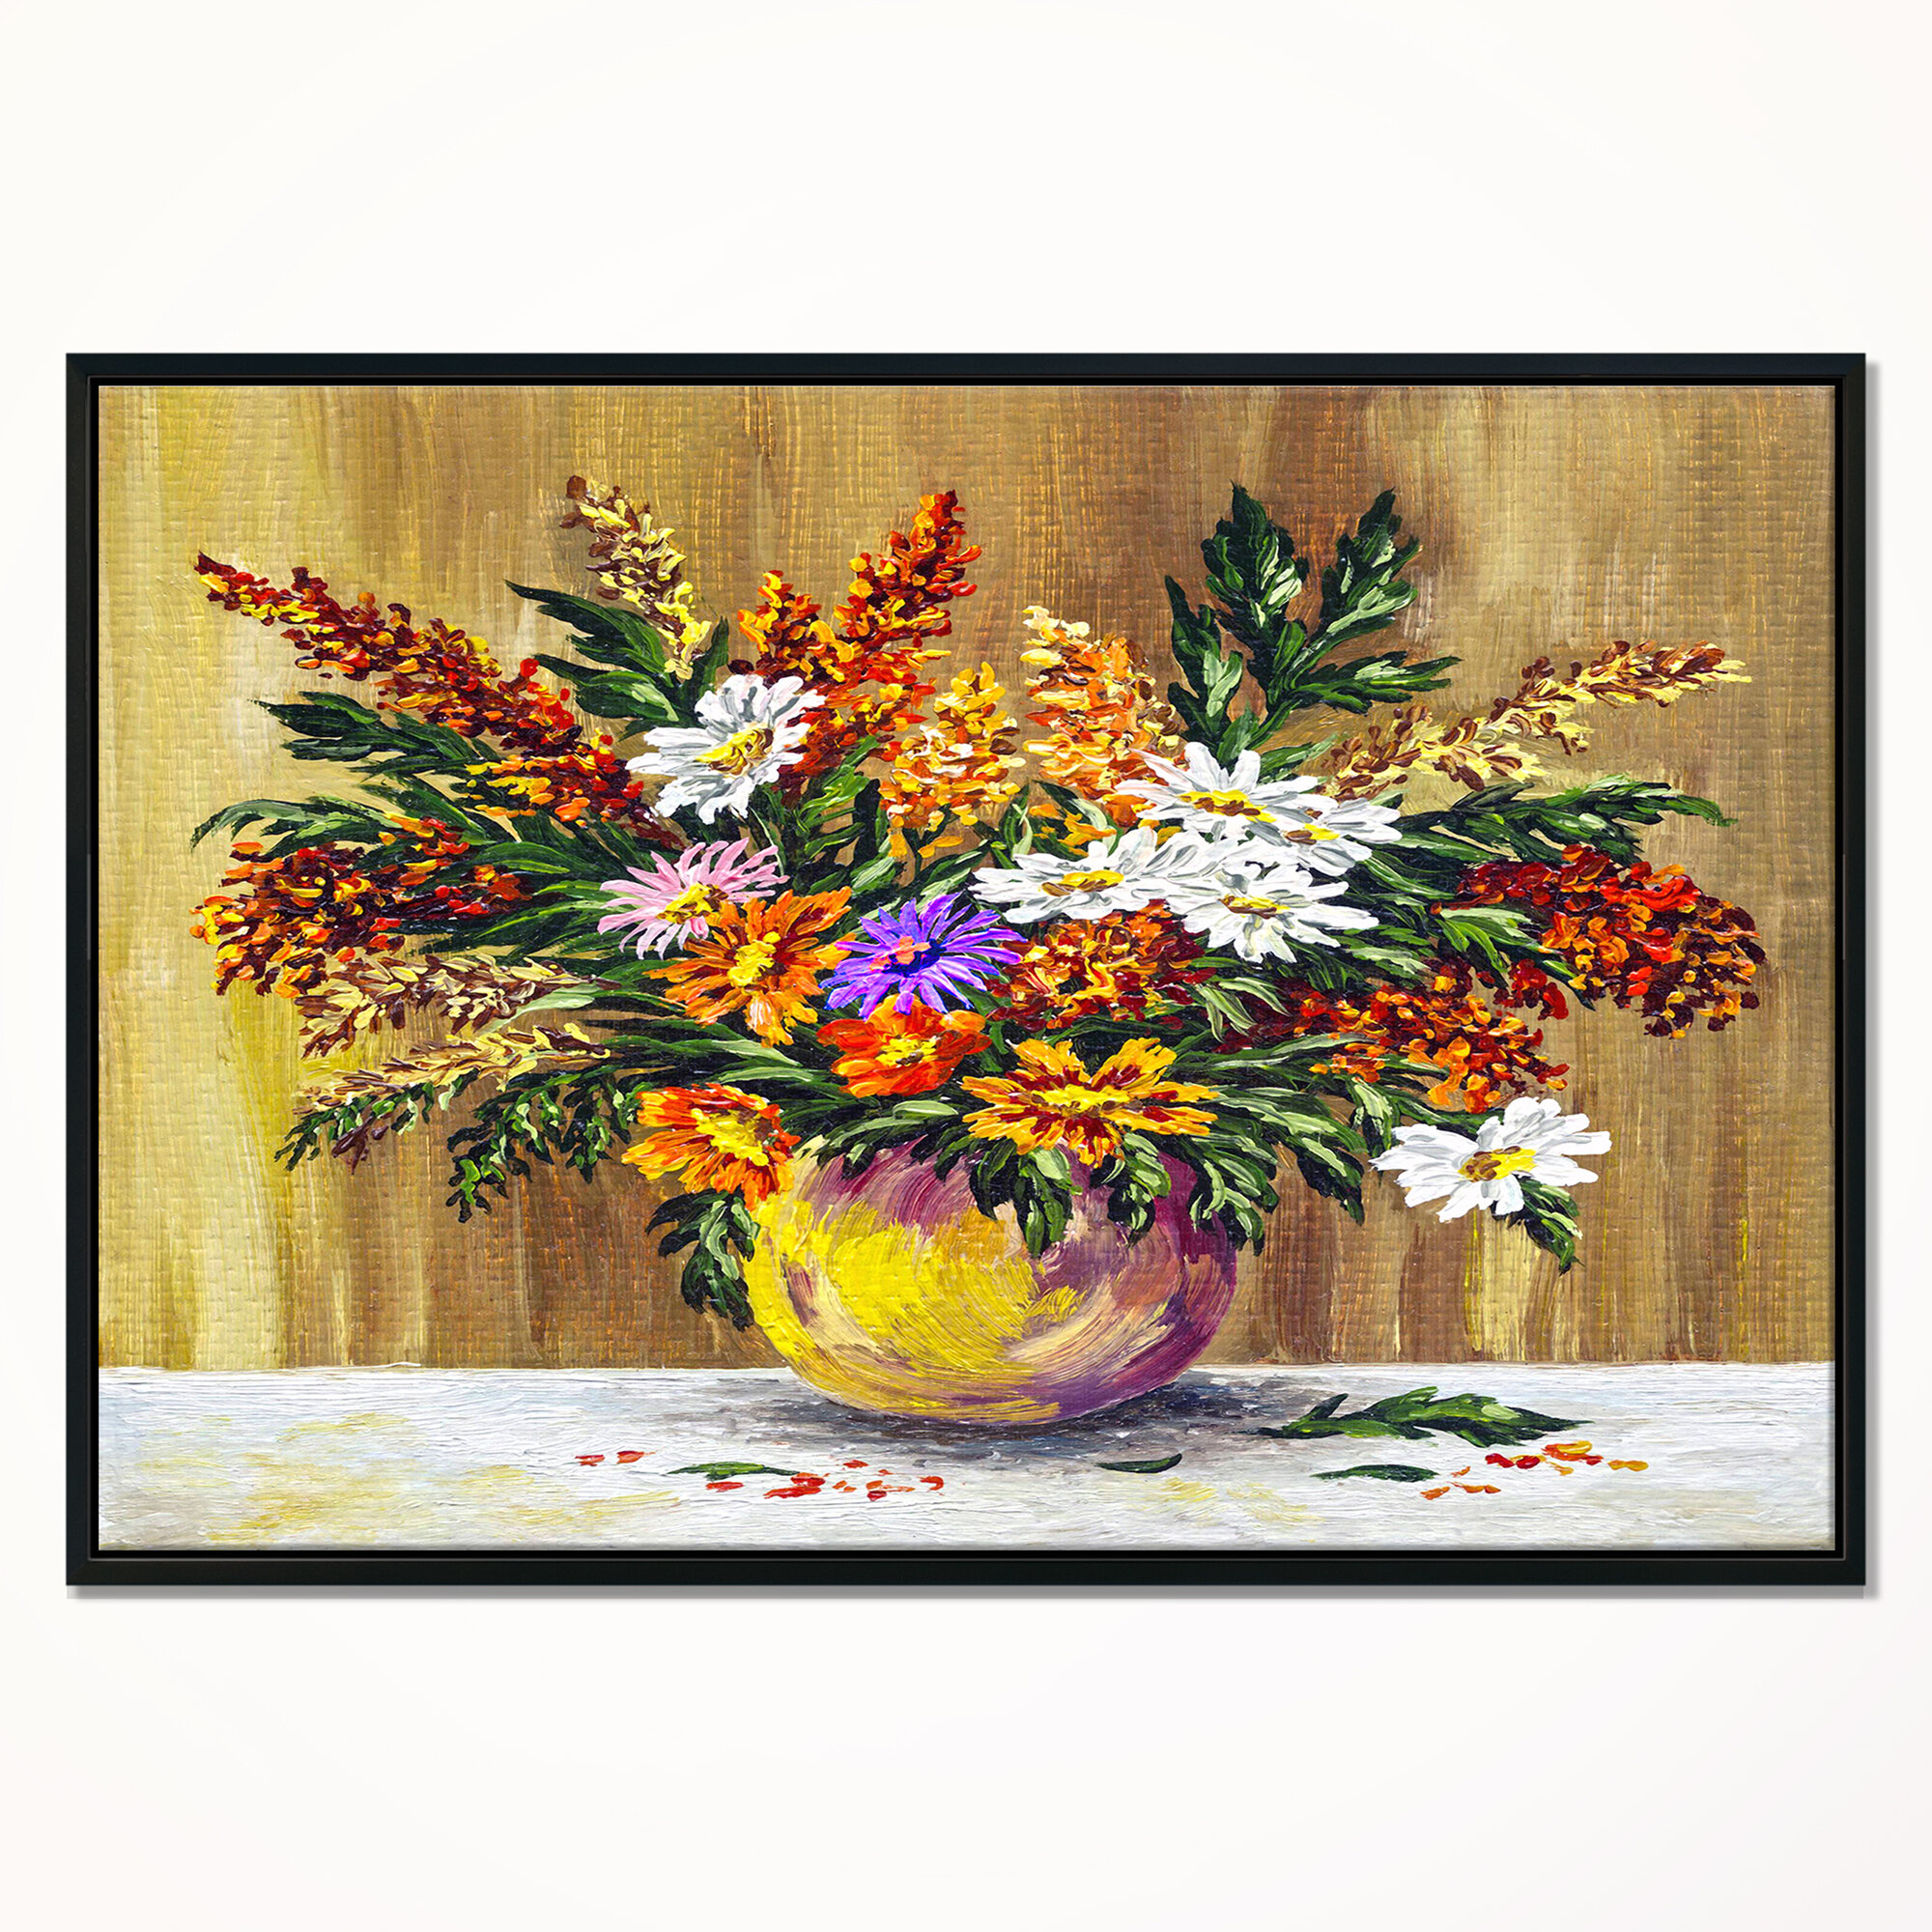 East Urban Home Wild Flowers In A Pot Framed Oil Painting Print On Wrapped Canvas Wayfair